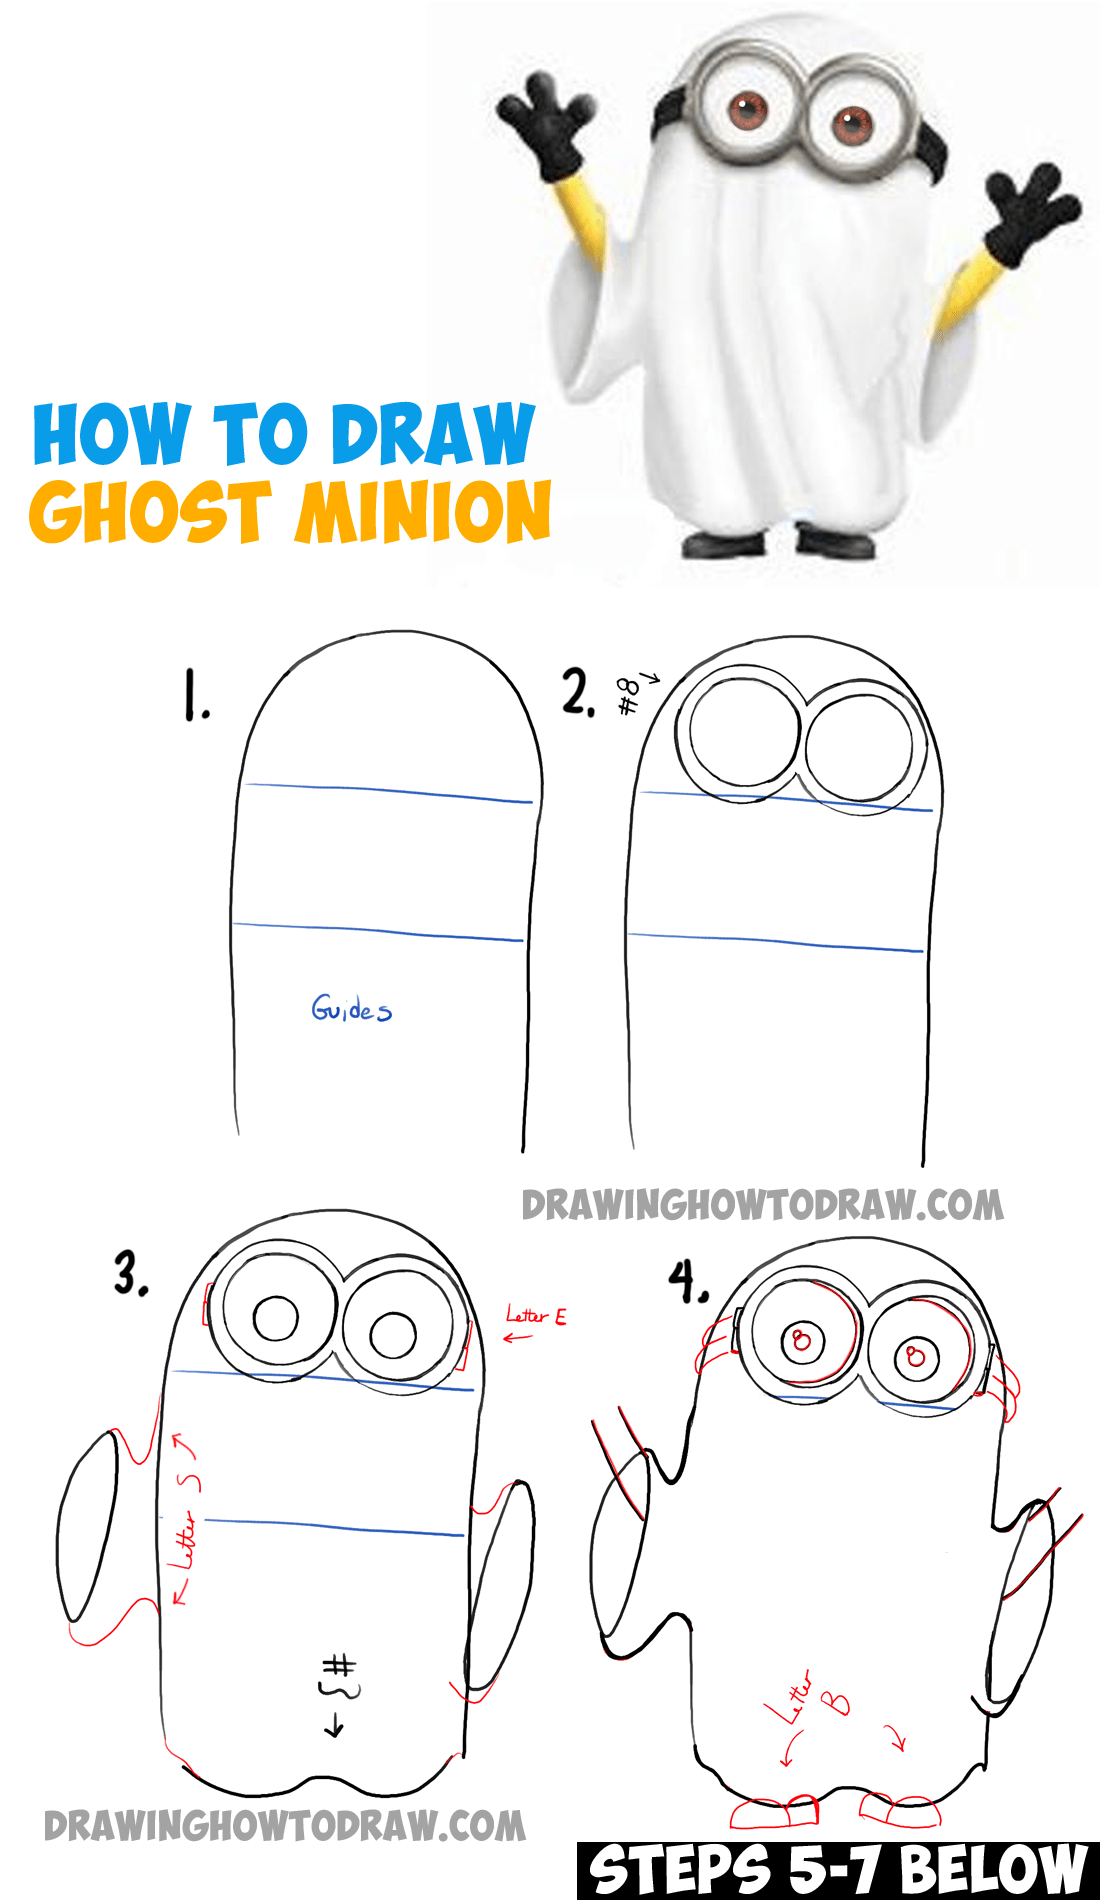 Uncategorized Easy Halloween Drawings Step Step how to draw ghost minions for halloween from the movie and trick or treating drawing tutorial step by tutorials